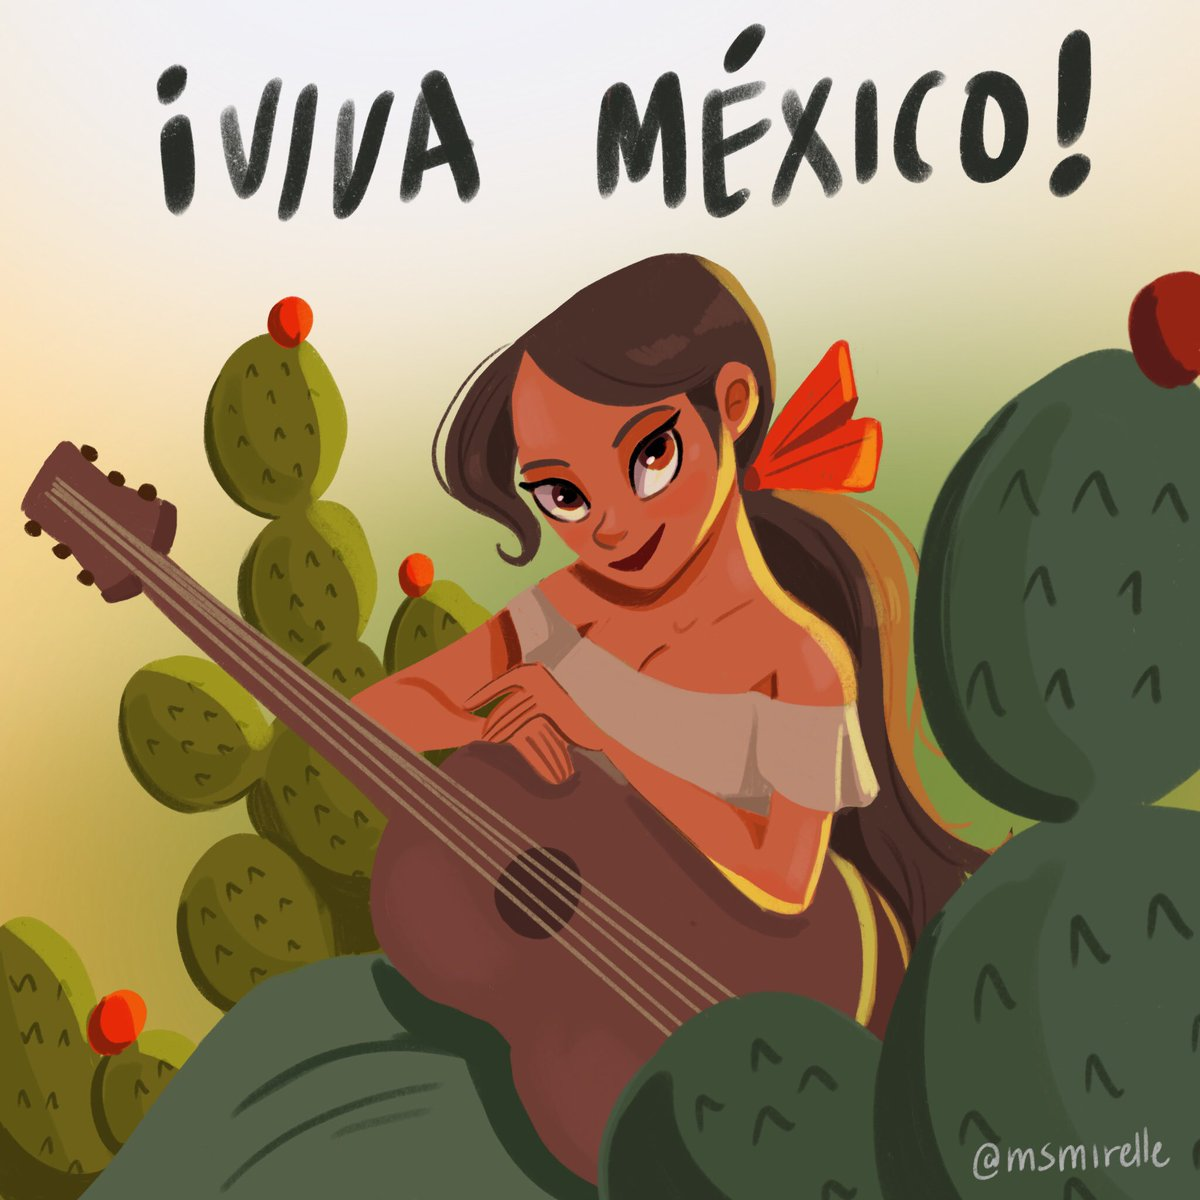 Happy Mexican Independence Day to everyone celebrating the #GritoDeIndependencia  tonight! And happy Hispanic Heritage Month!!  Illustrated with  @procreate   #VivaMexico  #HispanicHeritageMonth <br>http://pic.twitter.com/cz7I1kB9Pi